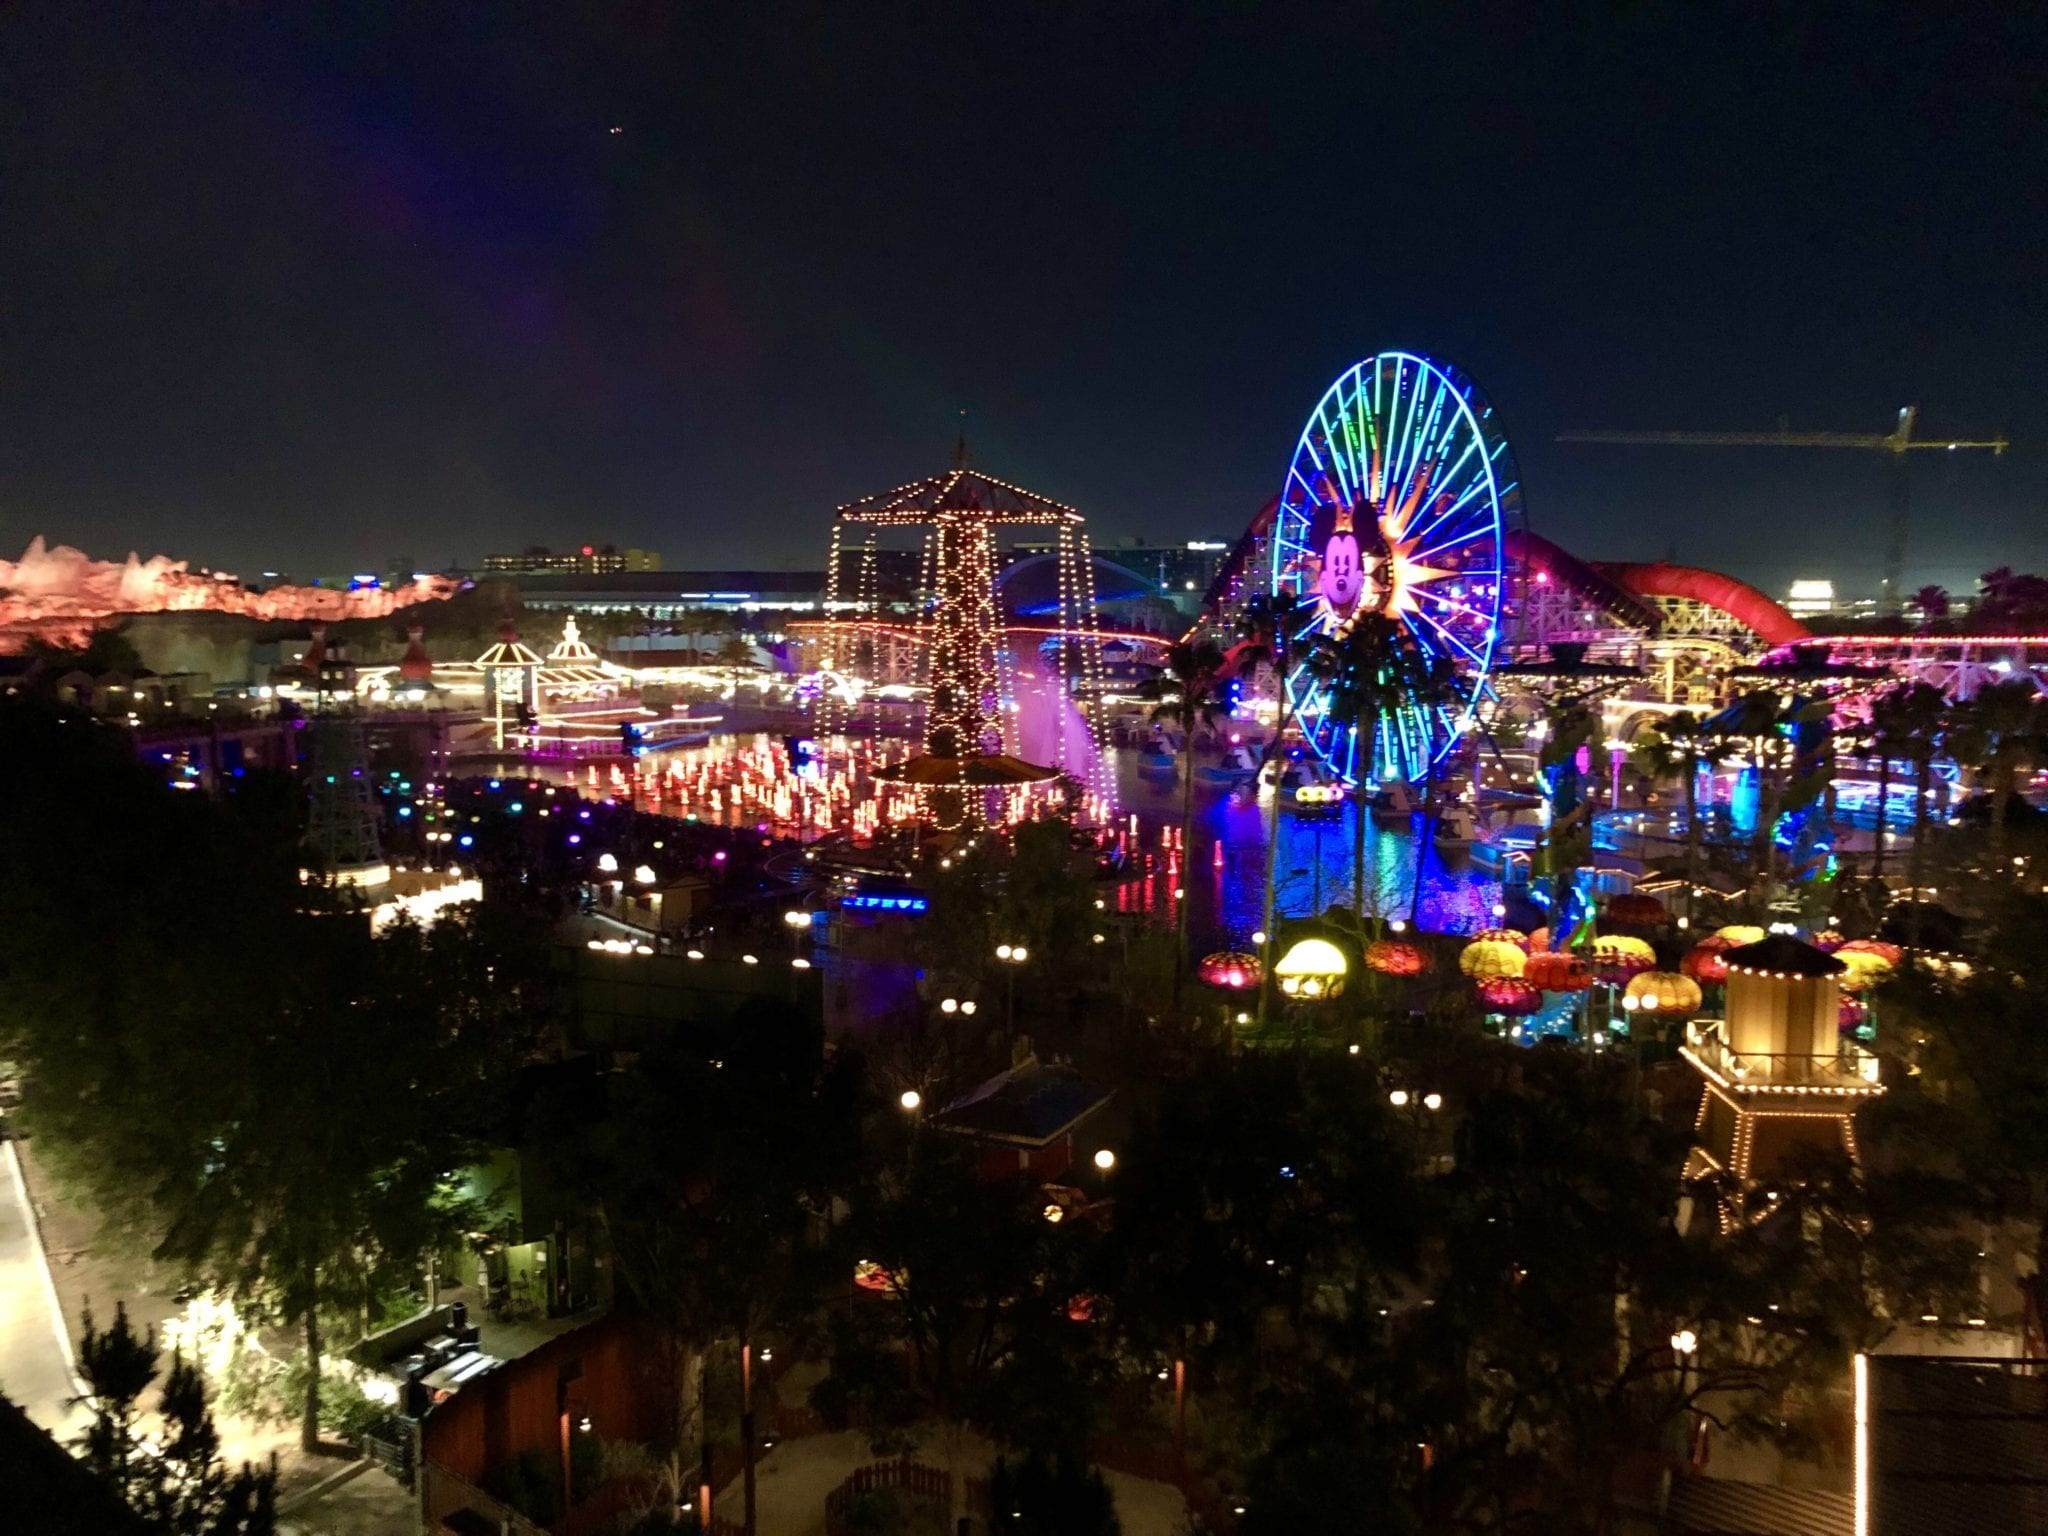 Time lapse of California Adventure Park